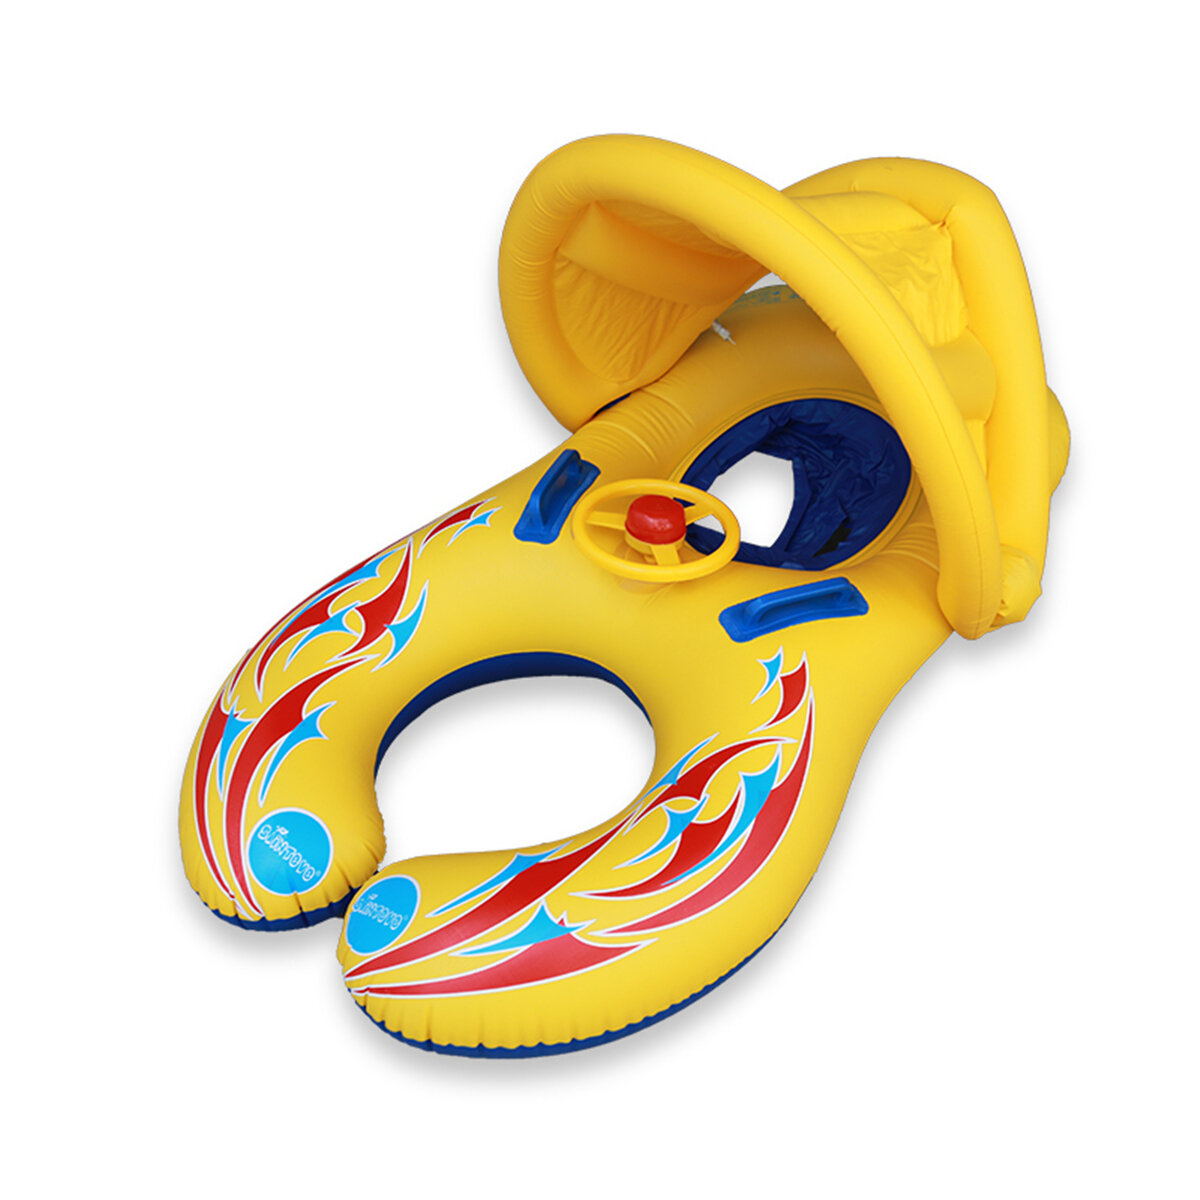 IPRee ™ Baby Swimming Piscina Flotador de agua inflable para niños Safety Ring Seat Canopy